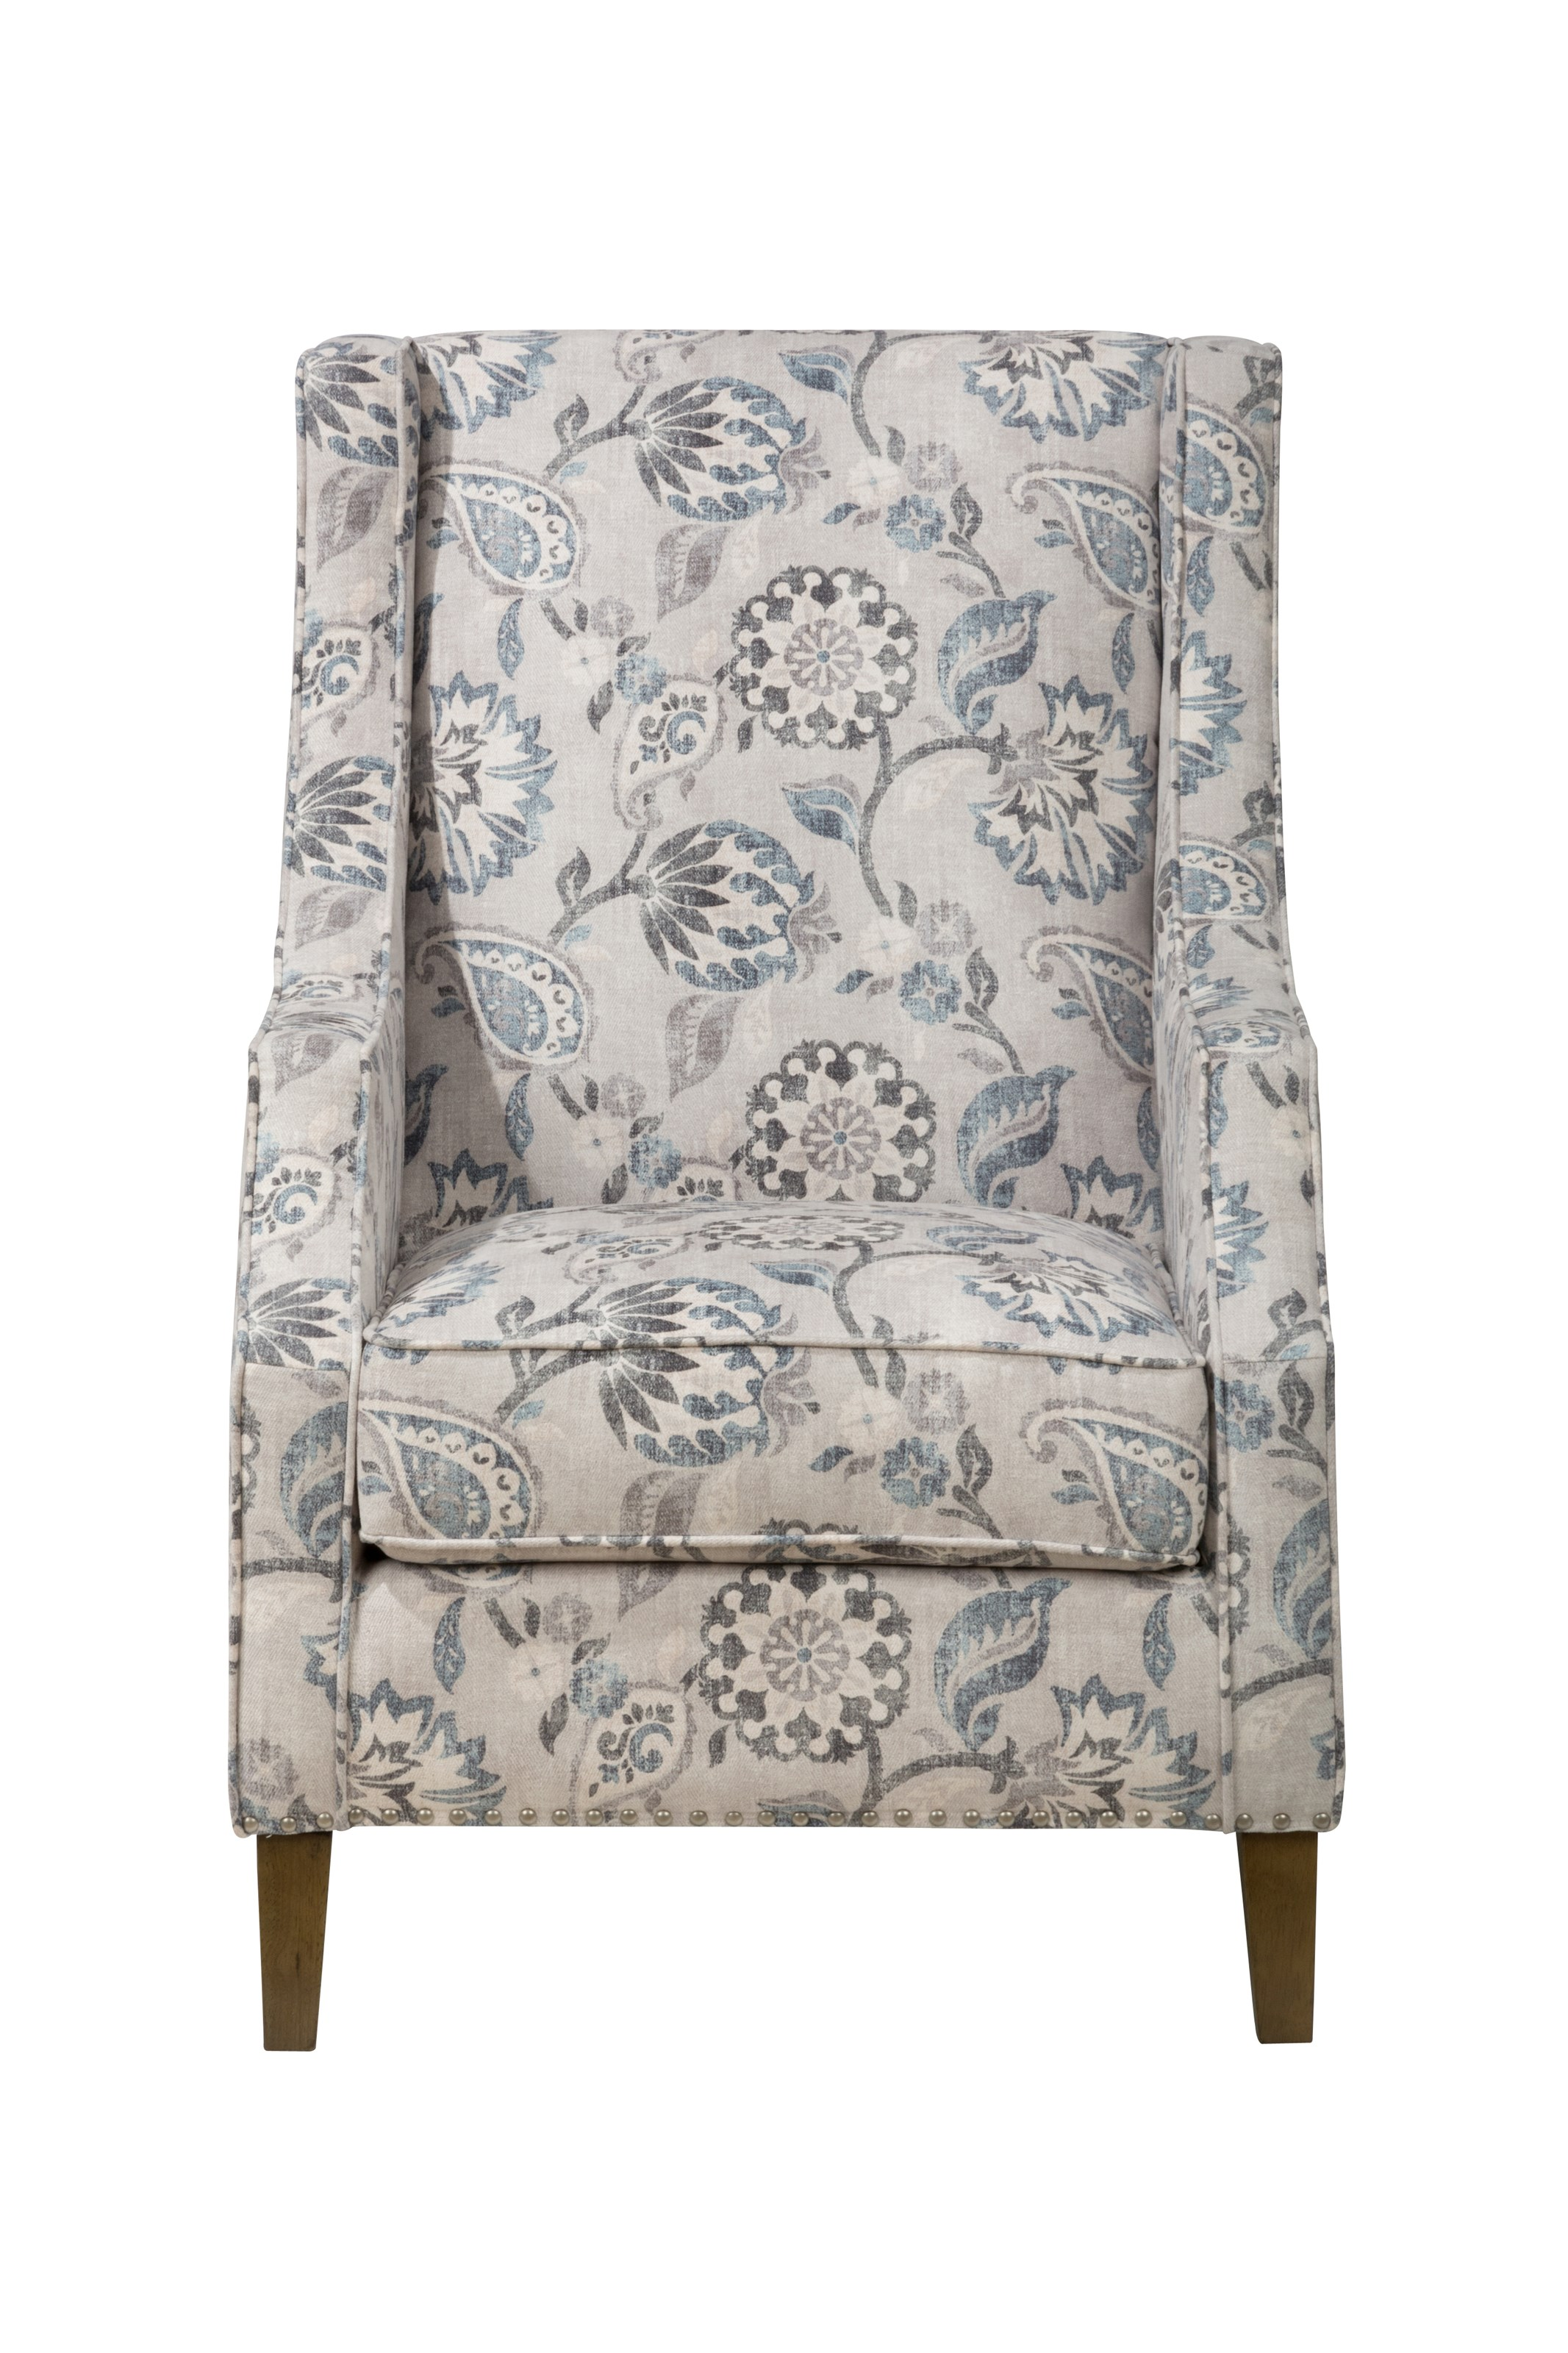 Accent Chairs Westbrook Chair by Jofran at Jofran